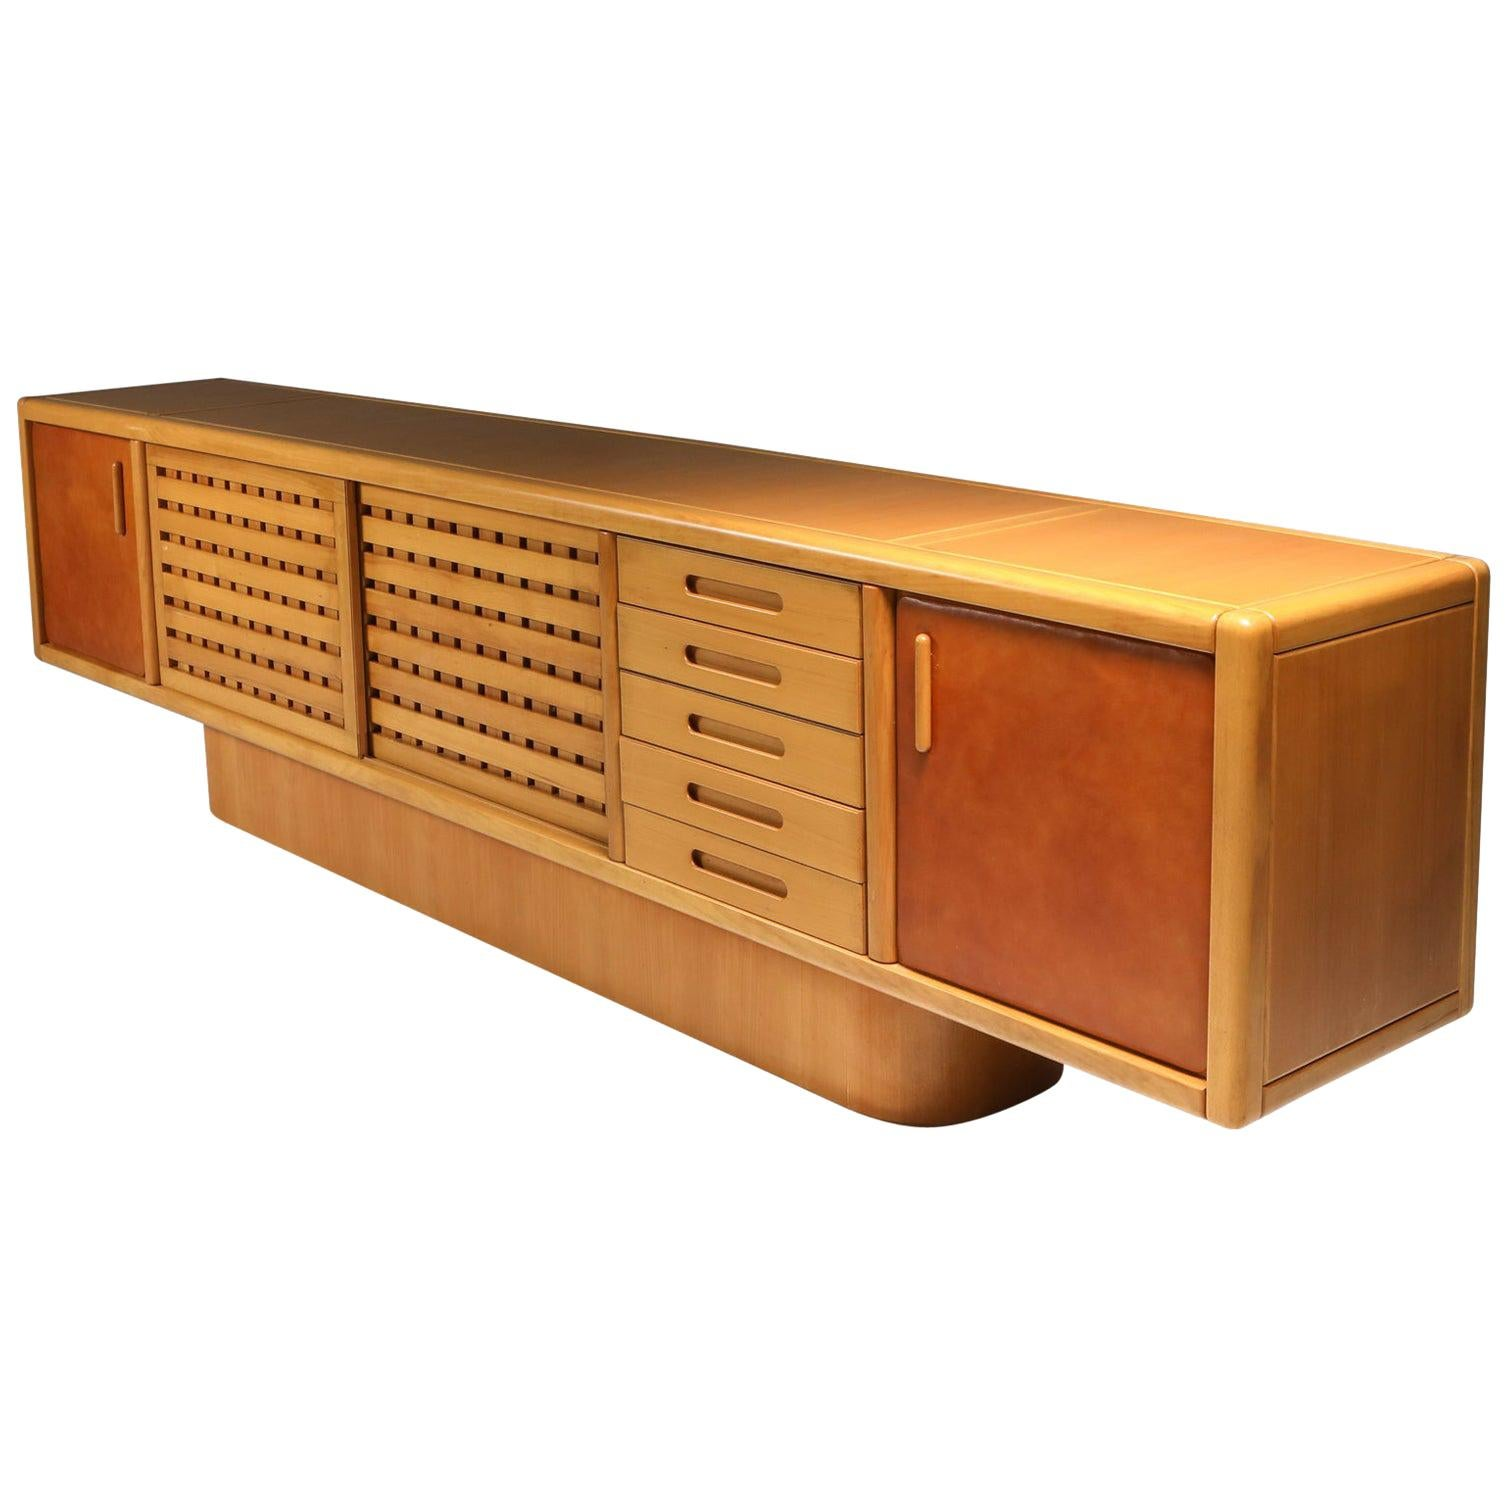 Beech and Leather Sideboard by Mario Marenco, Italy